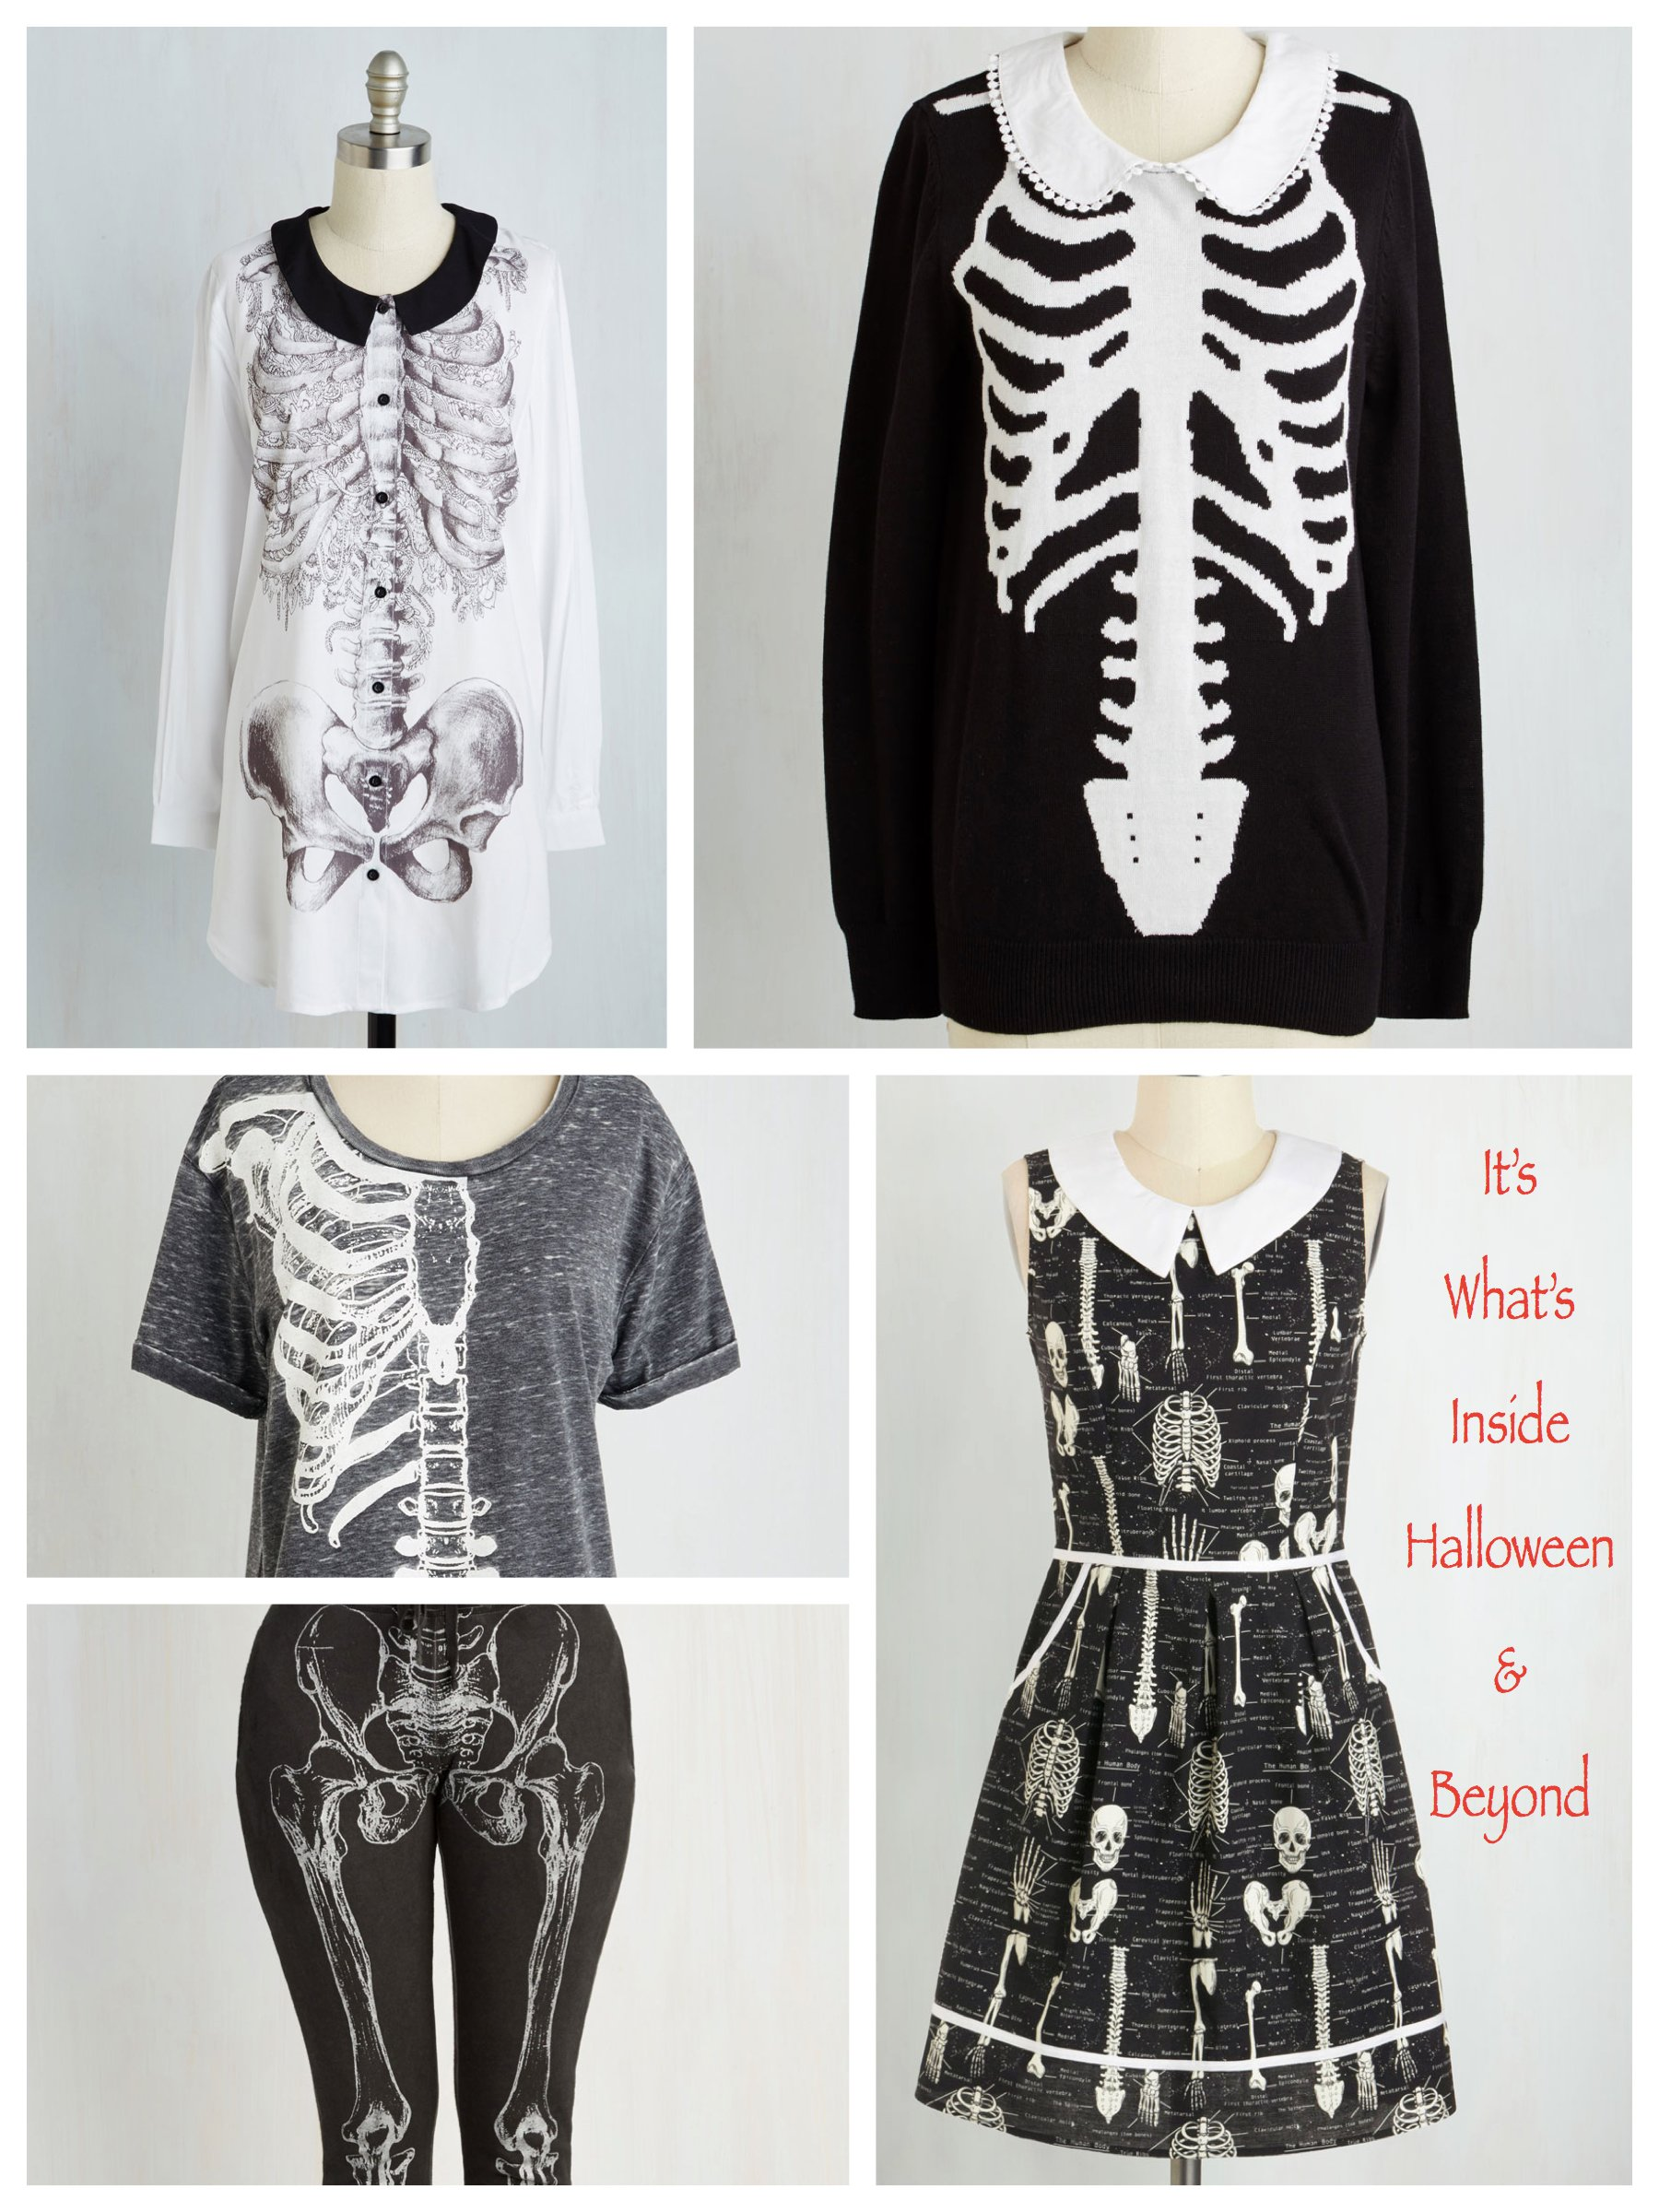 Its Whats Inside Halloween and Beyond, Halloween Costume Trend